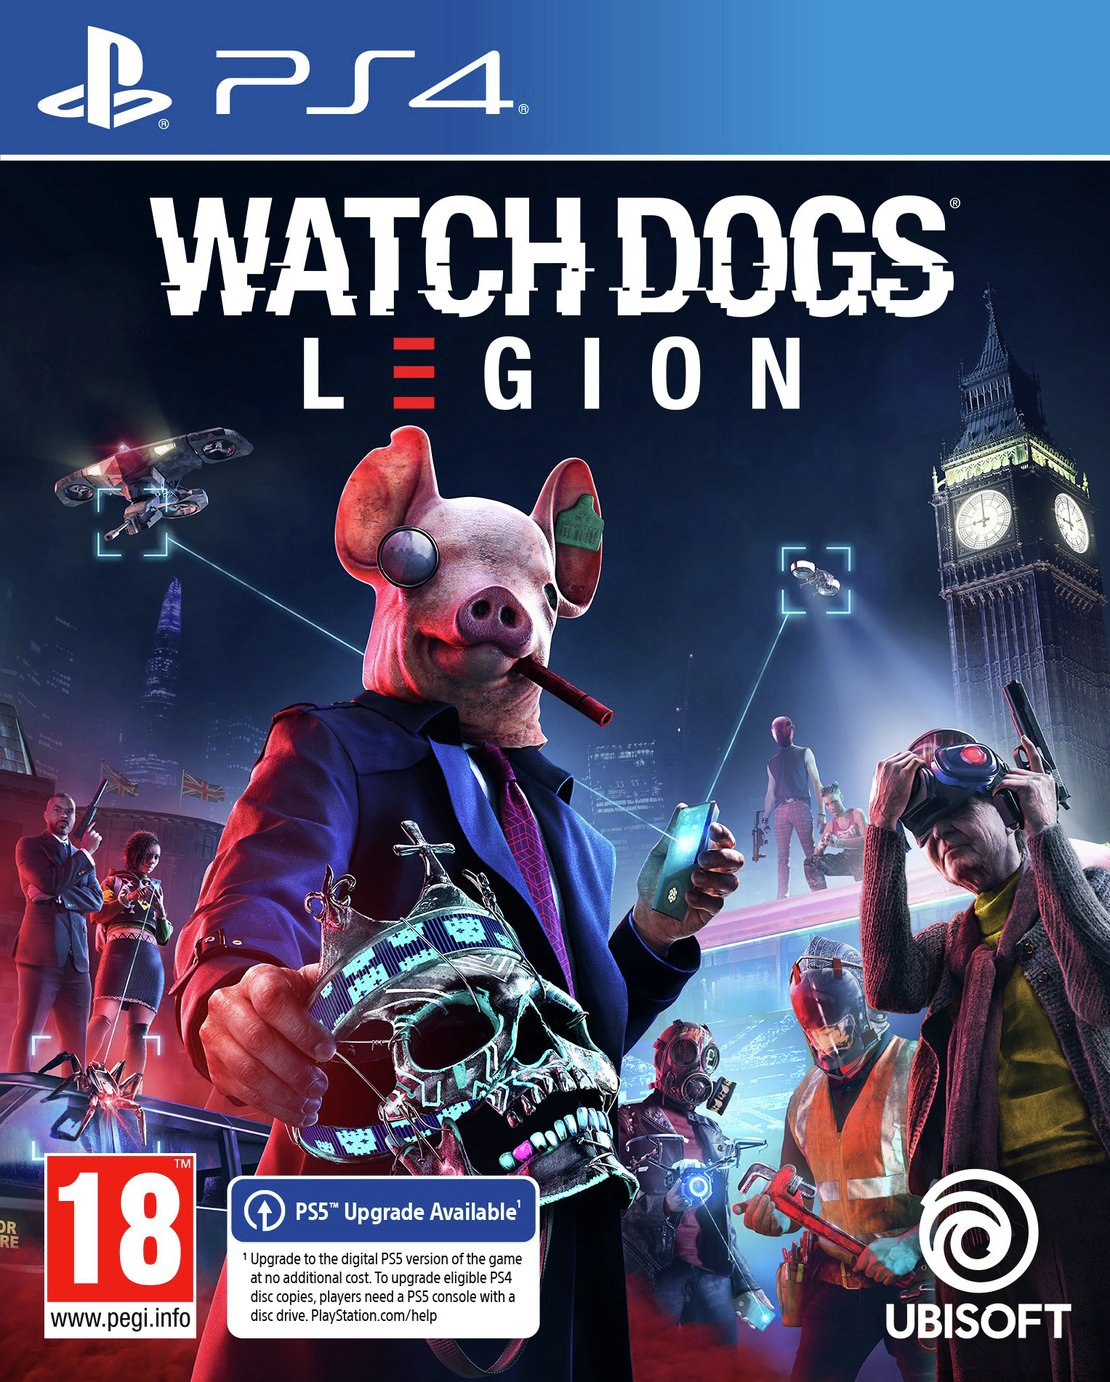 Watch Dogs Legion PS4 Pre-Order Game